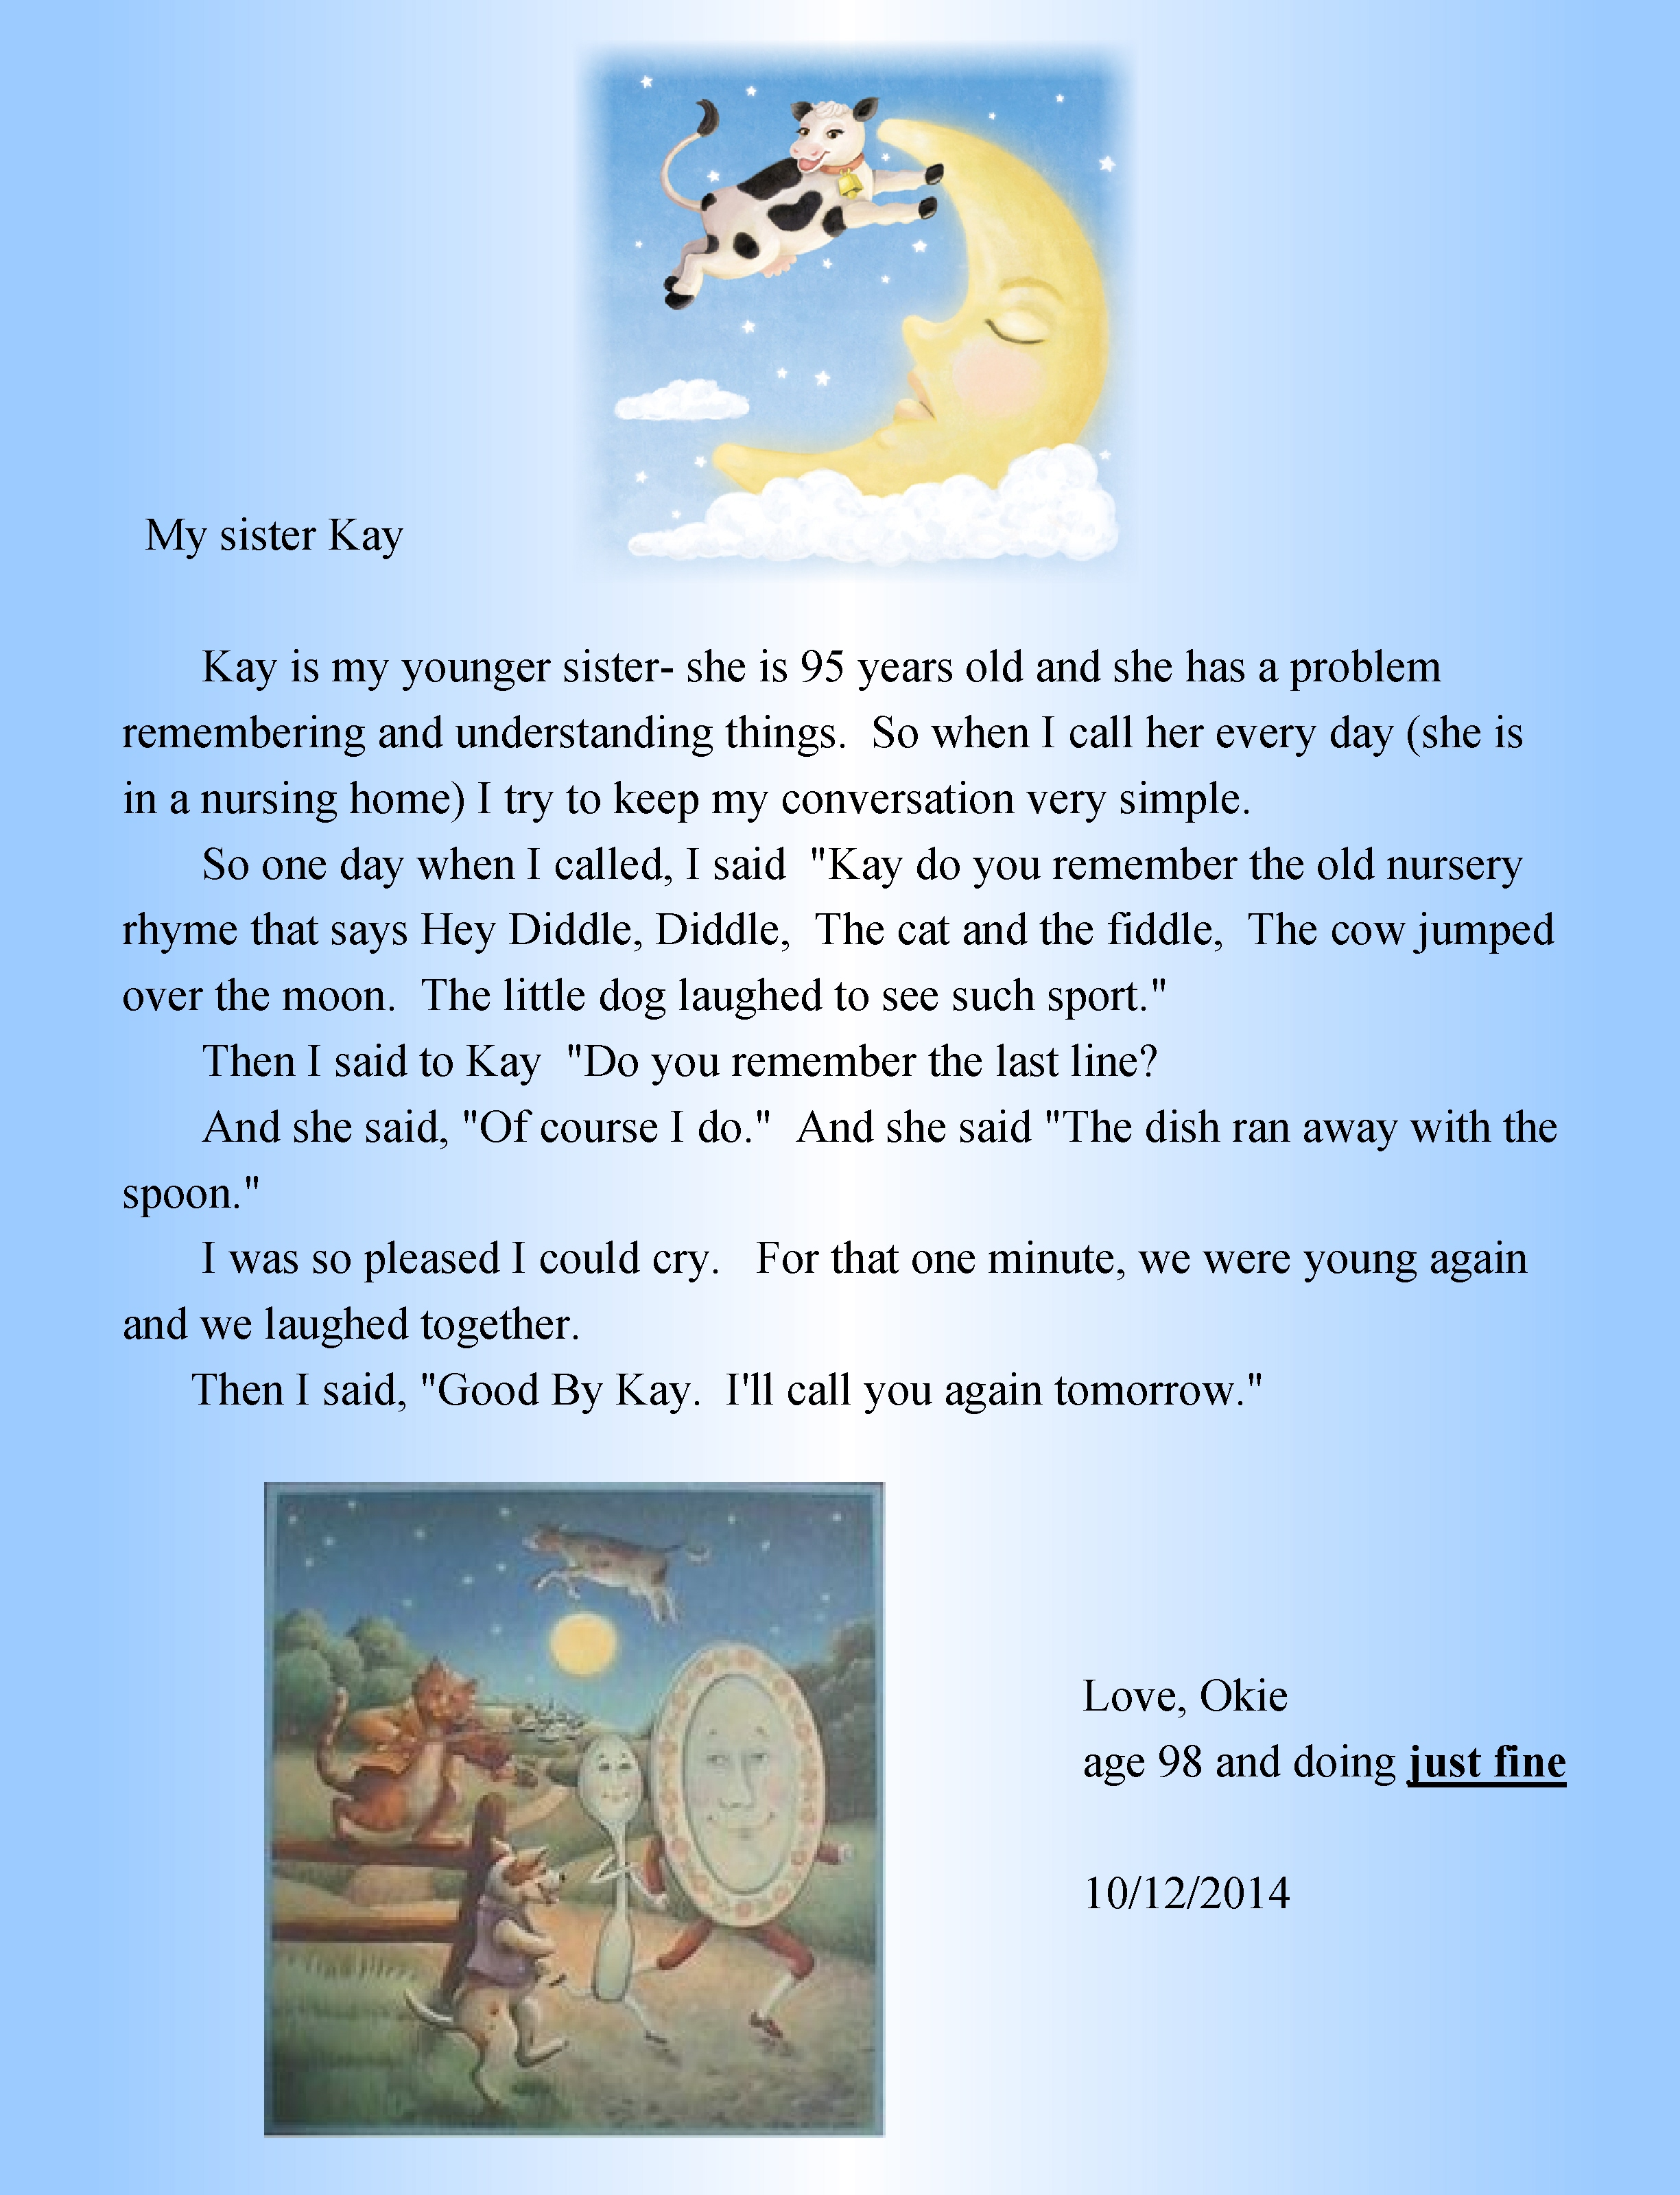 Uncategorized Cow Poems 98 years old and still writing okies poems a collection of okie hey diddle the cat fiddle cow jumped over moon